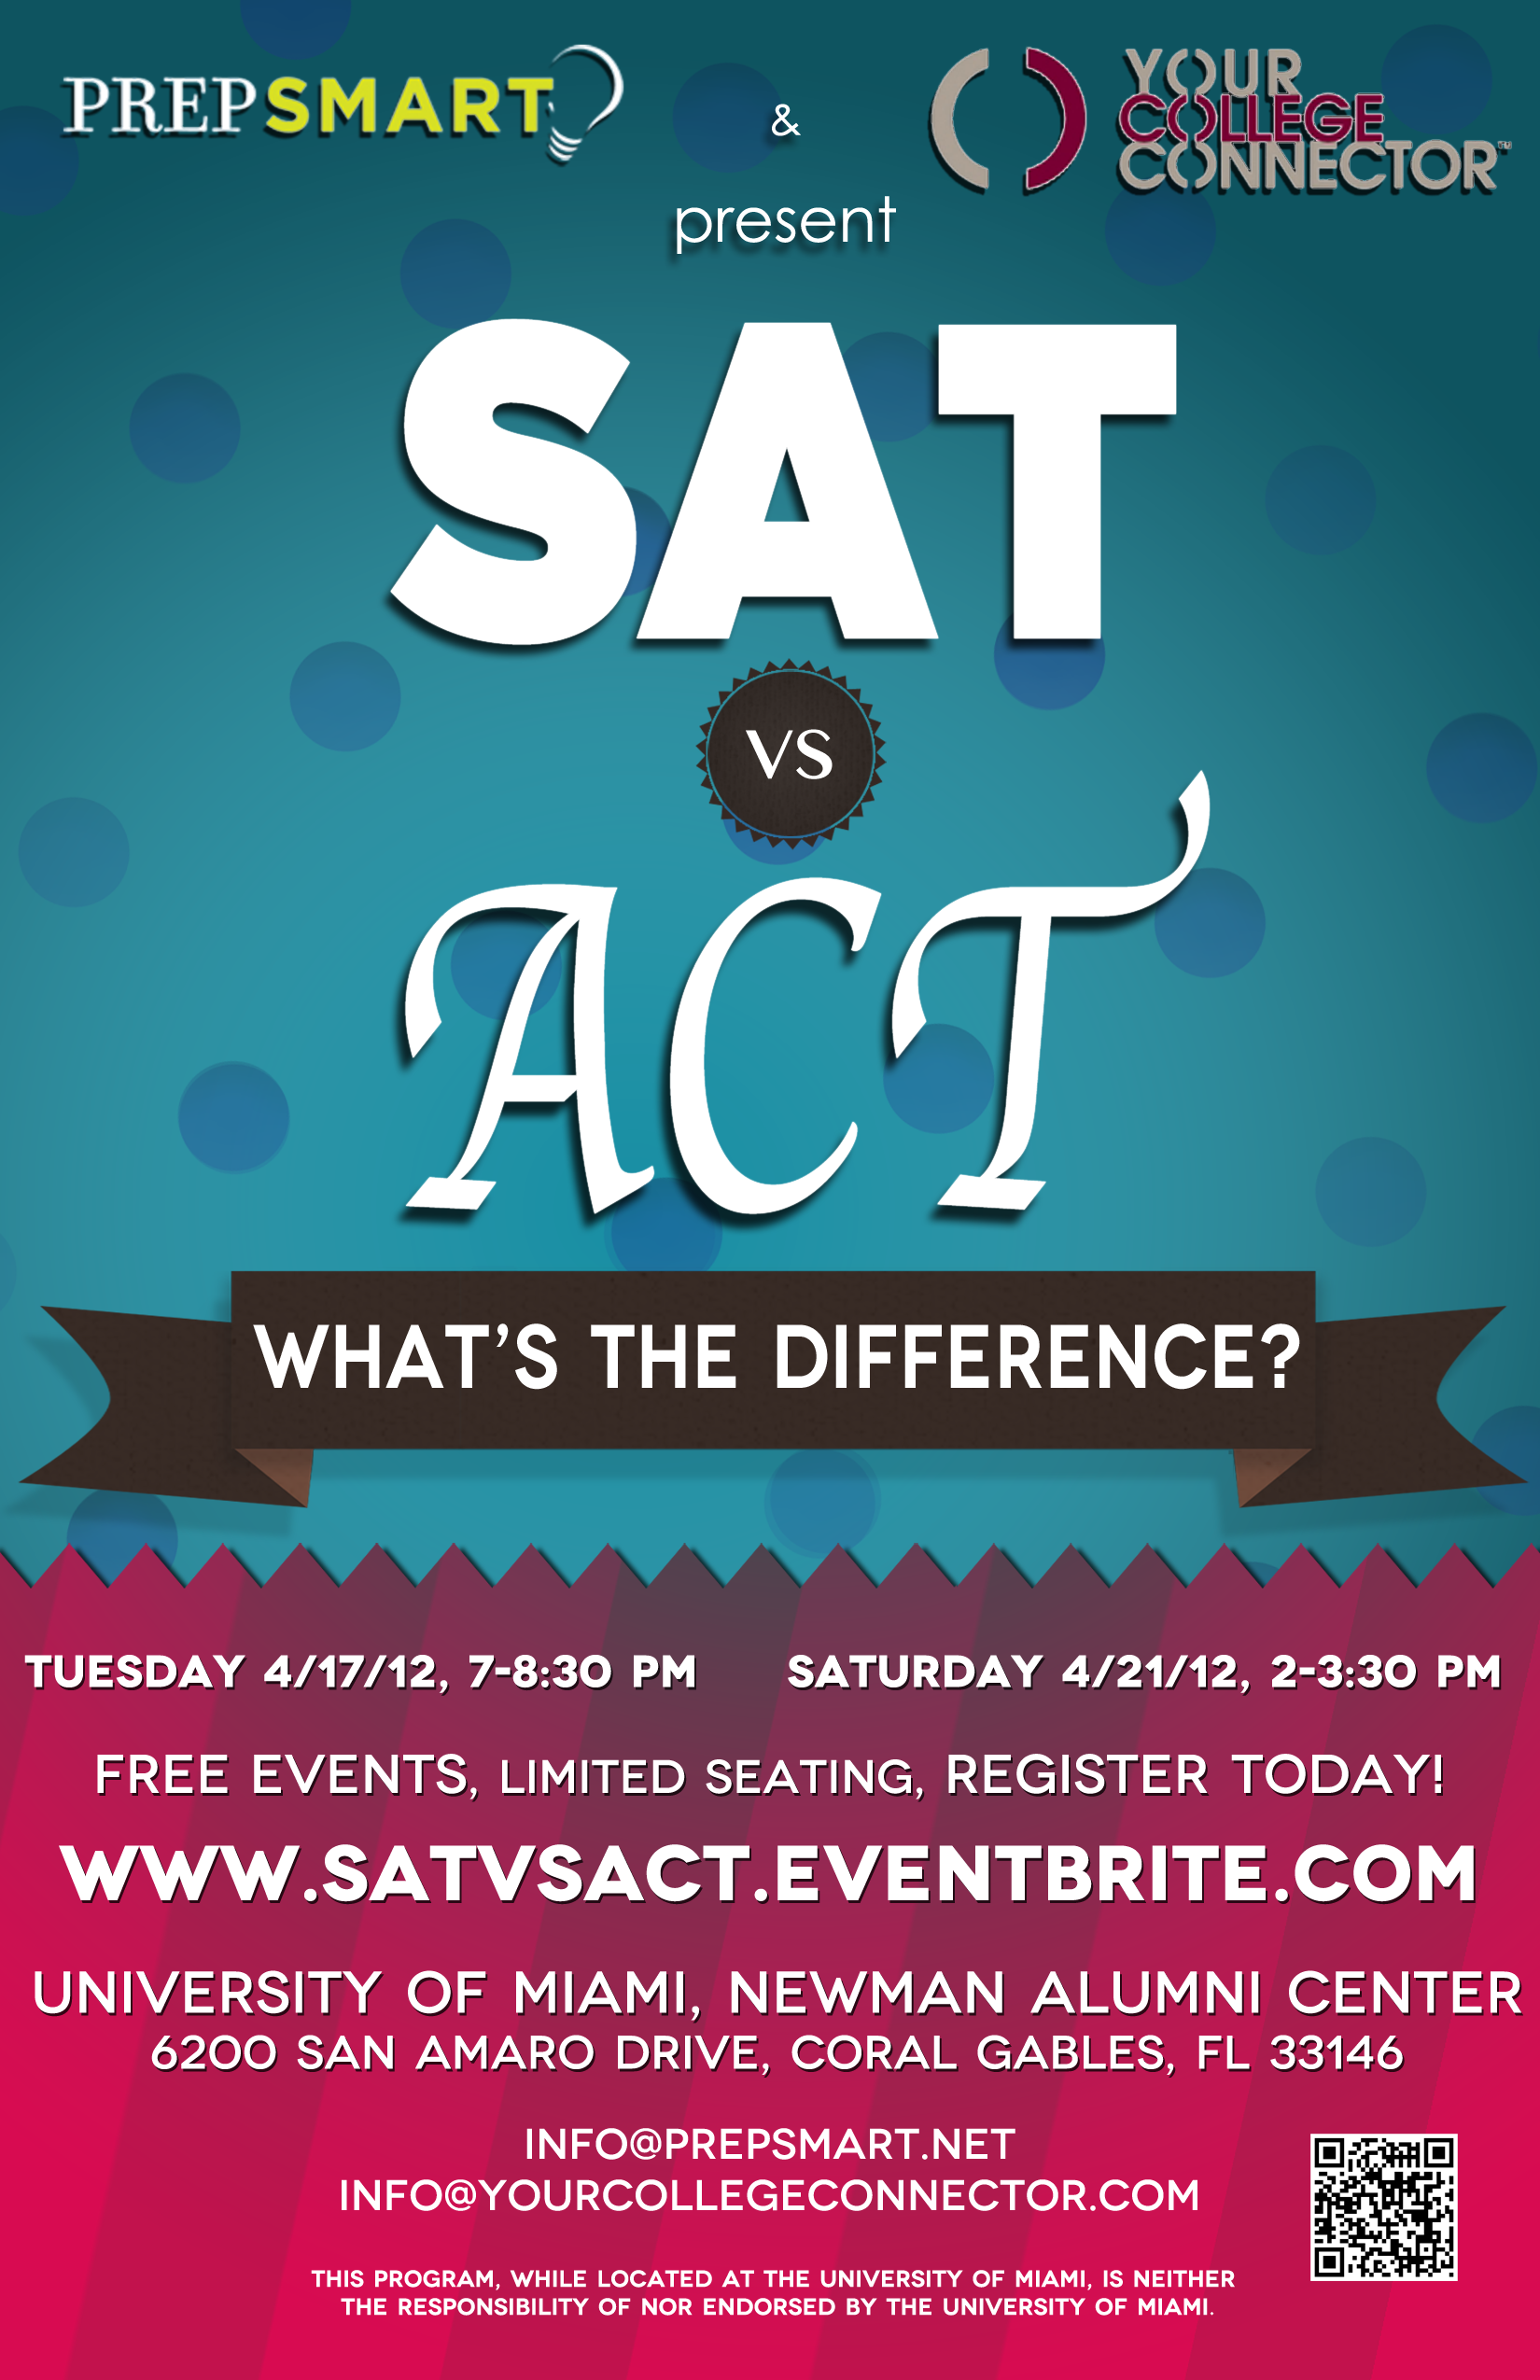 SAT vs ACT: What's the Difference?